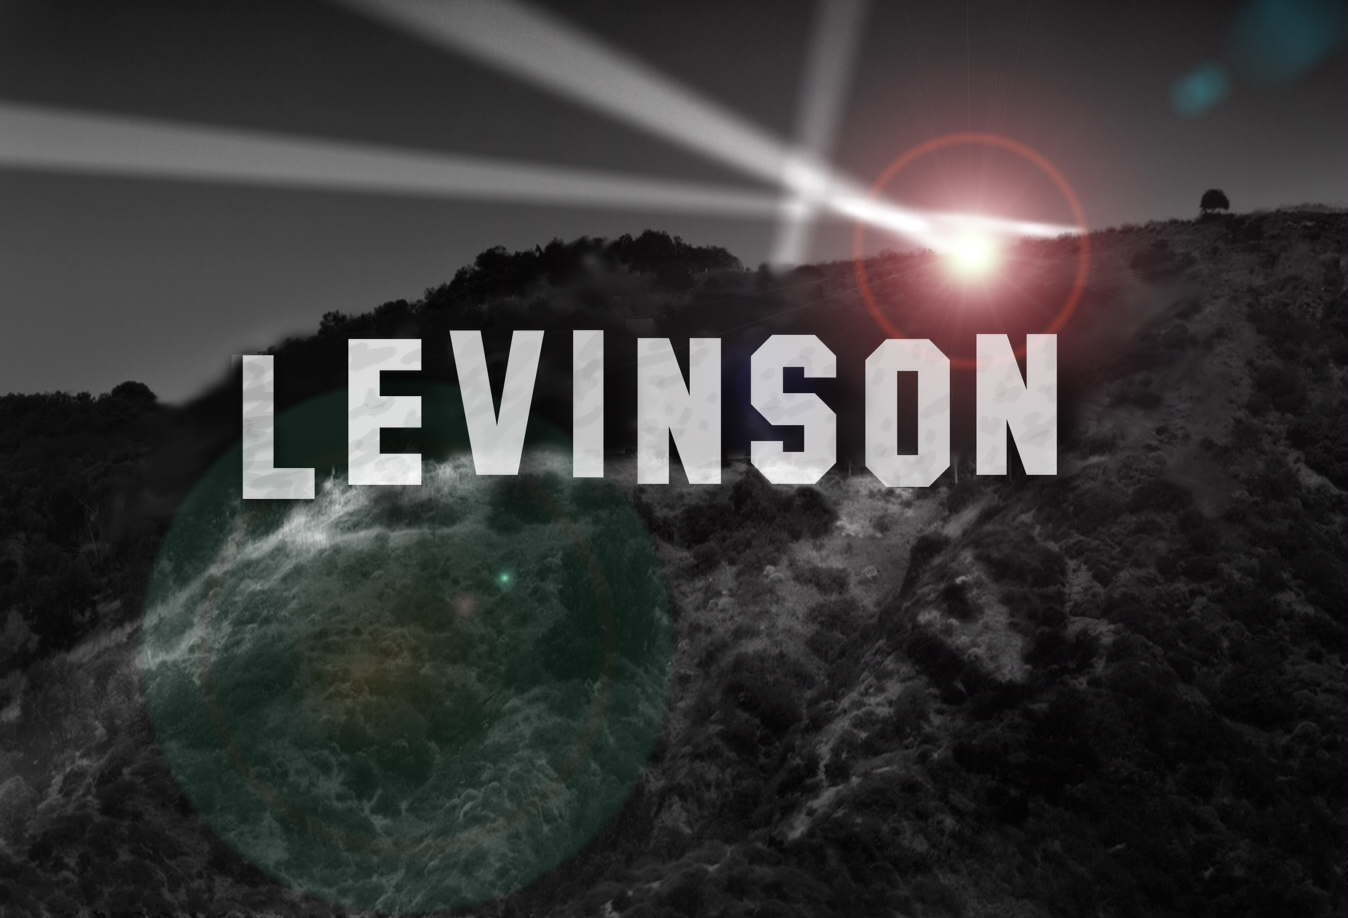 Levinson Hollywood Sign (Photoshop by Tom Salvas)